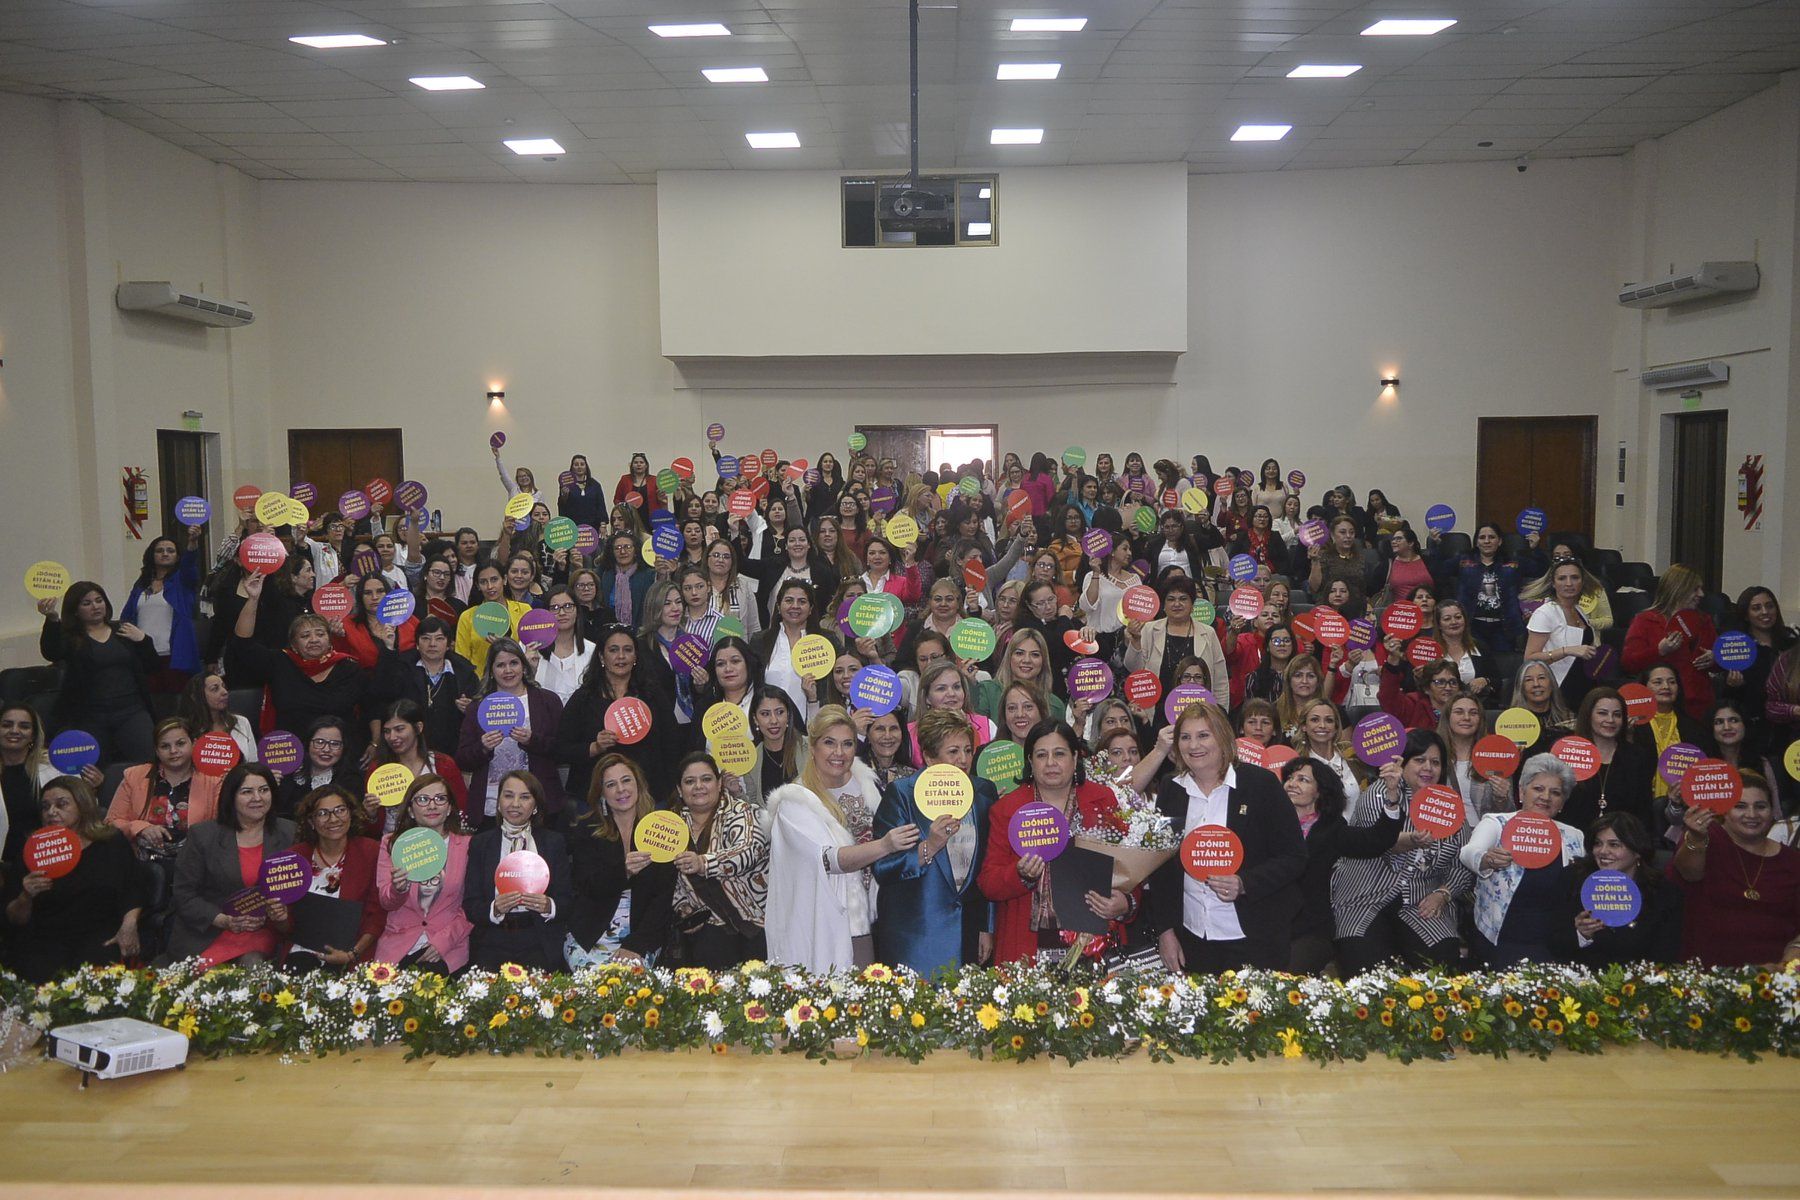 A meeting of women's networks in Paraguay, 24 August 2019. Photo credit: International IDEA